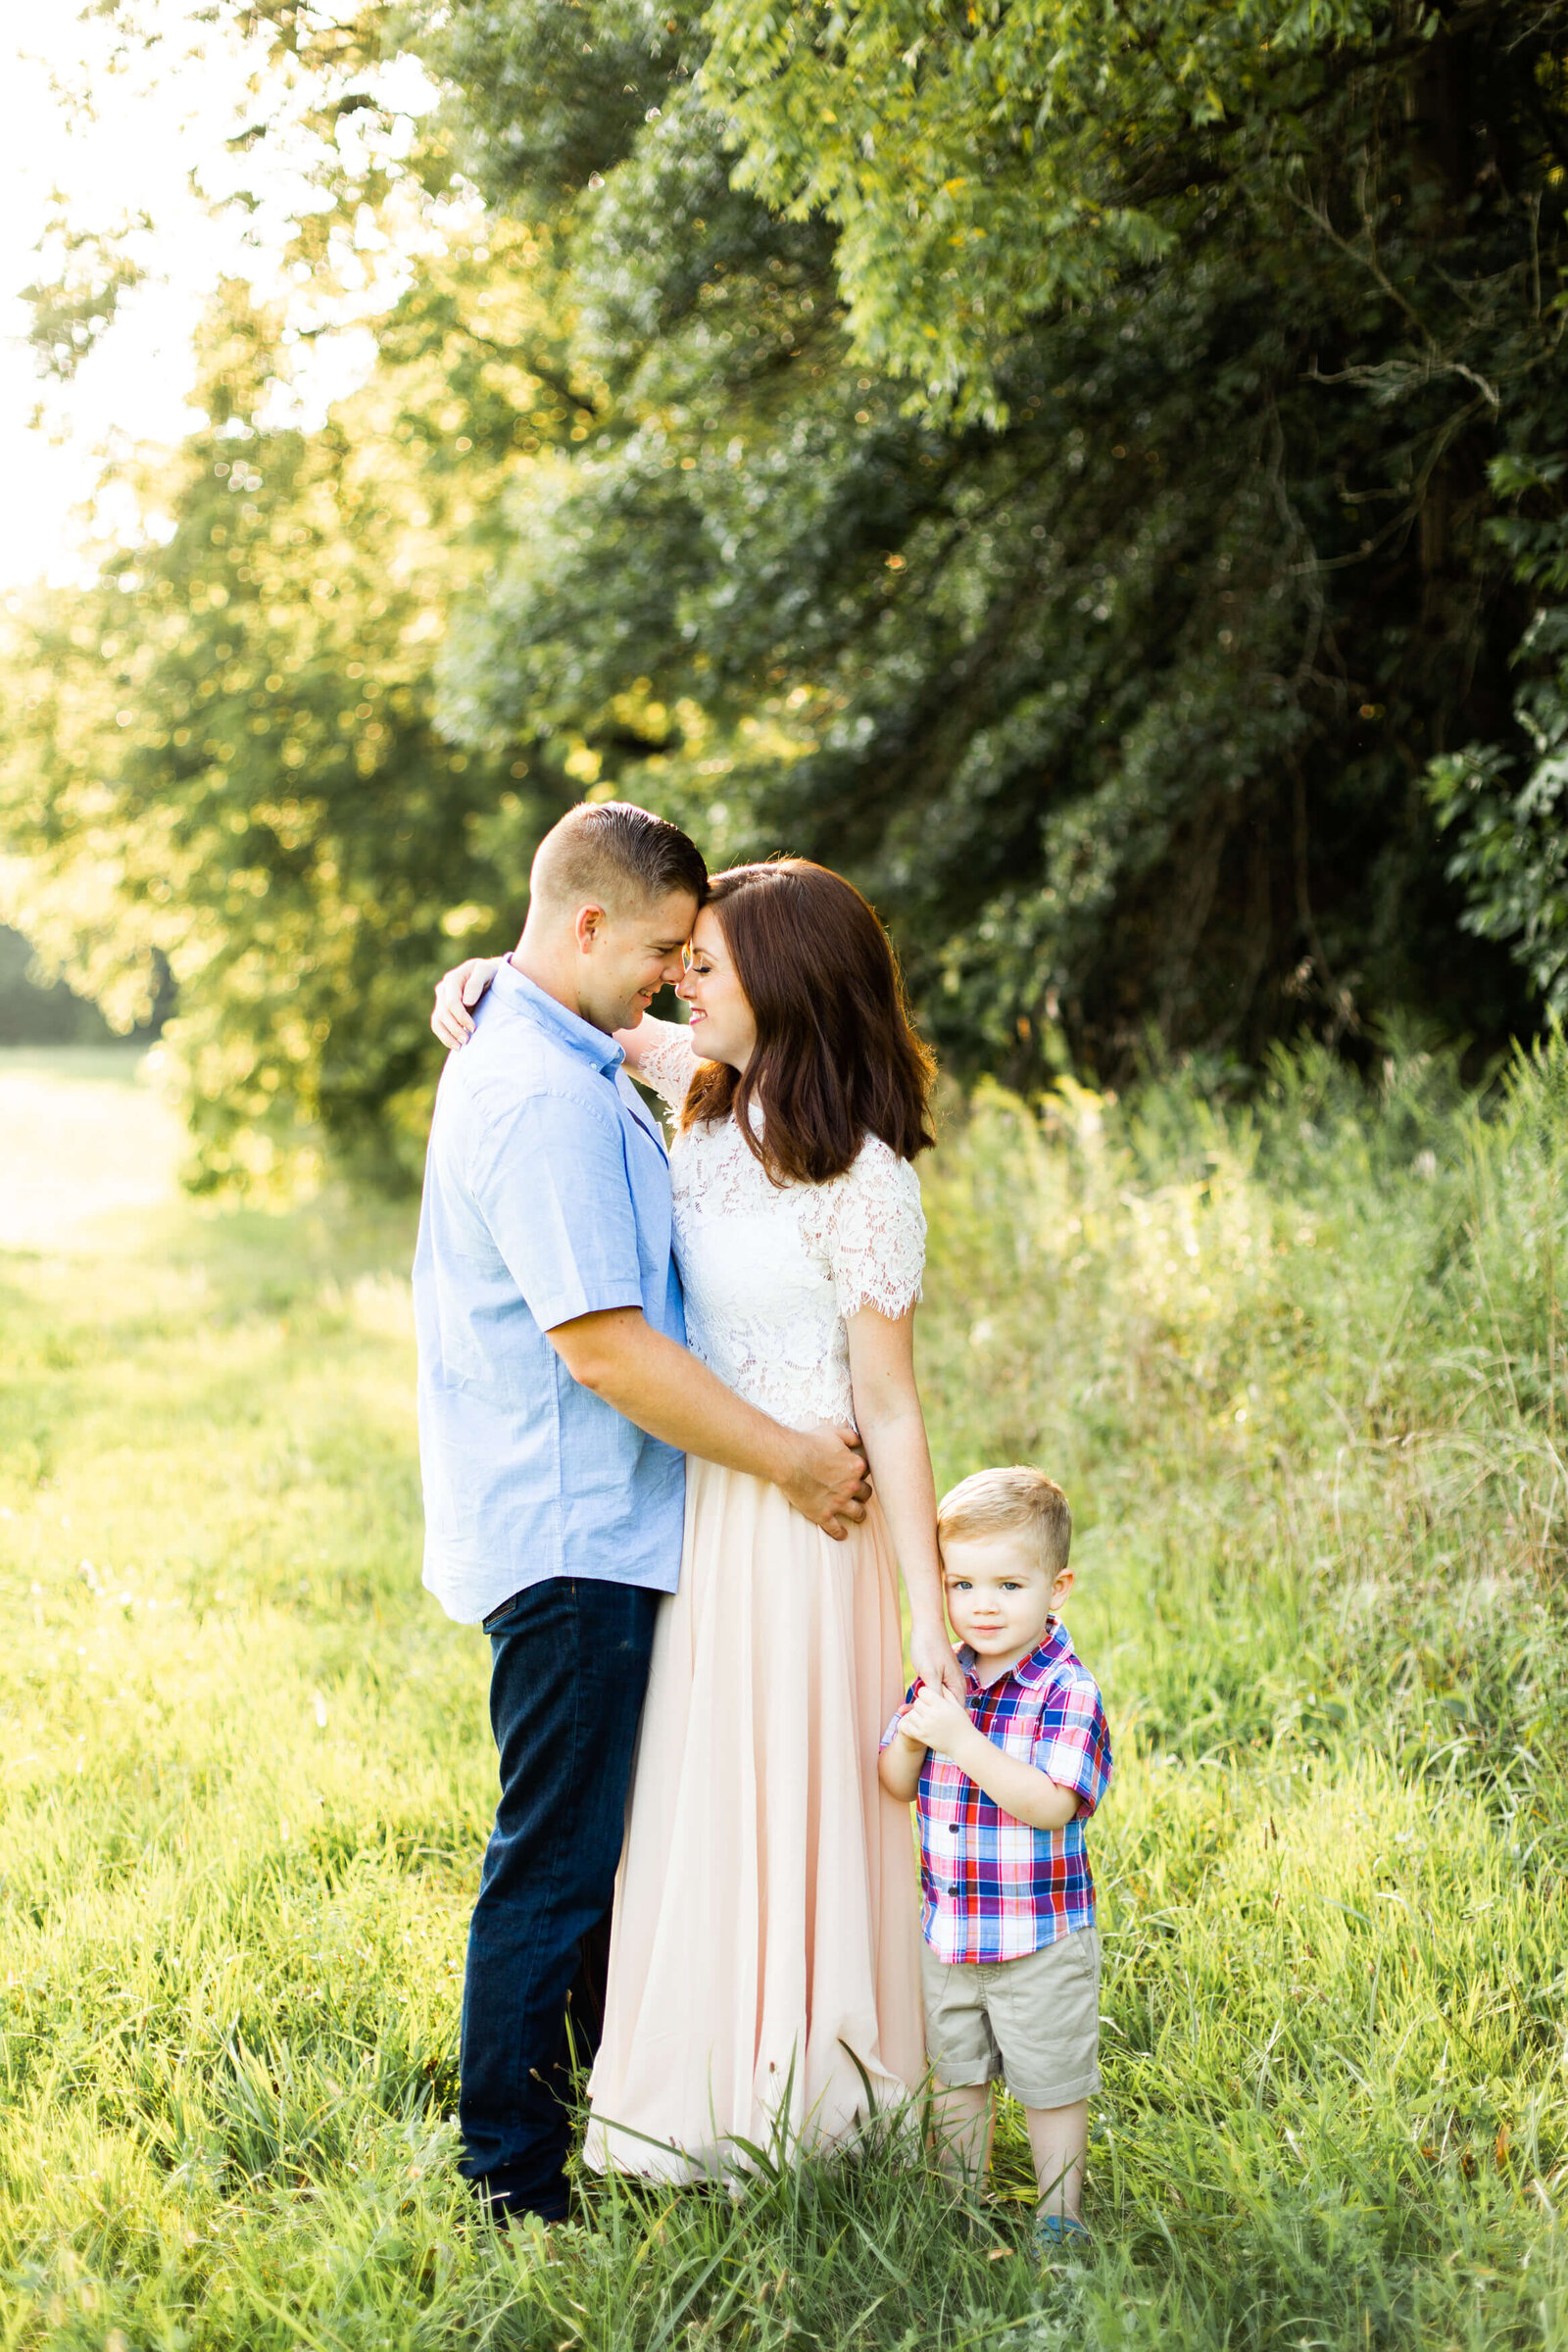 Harting Family-Abigail Edmons Photography-Fort Wayne Indiana-4